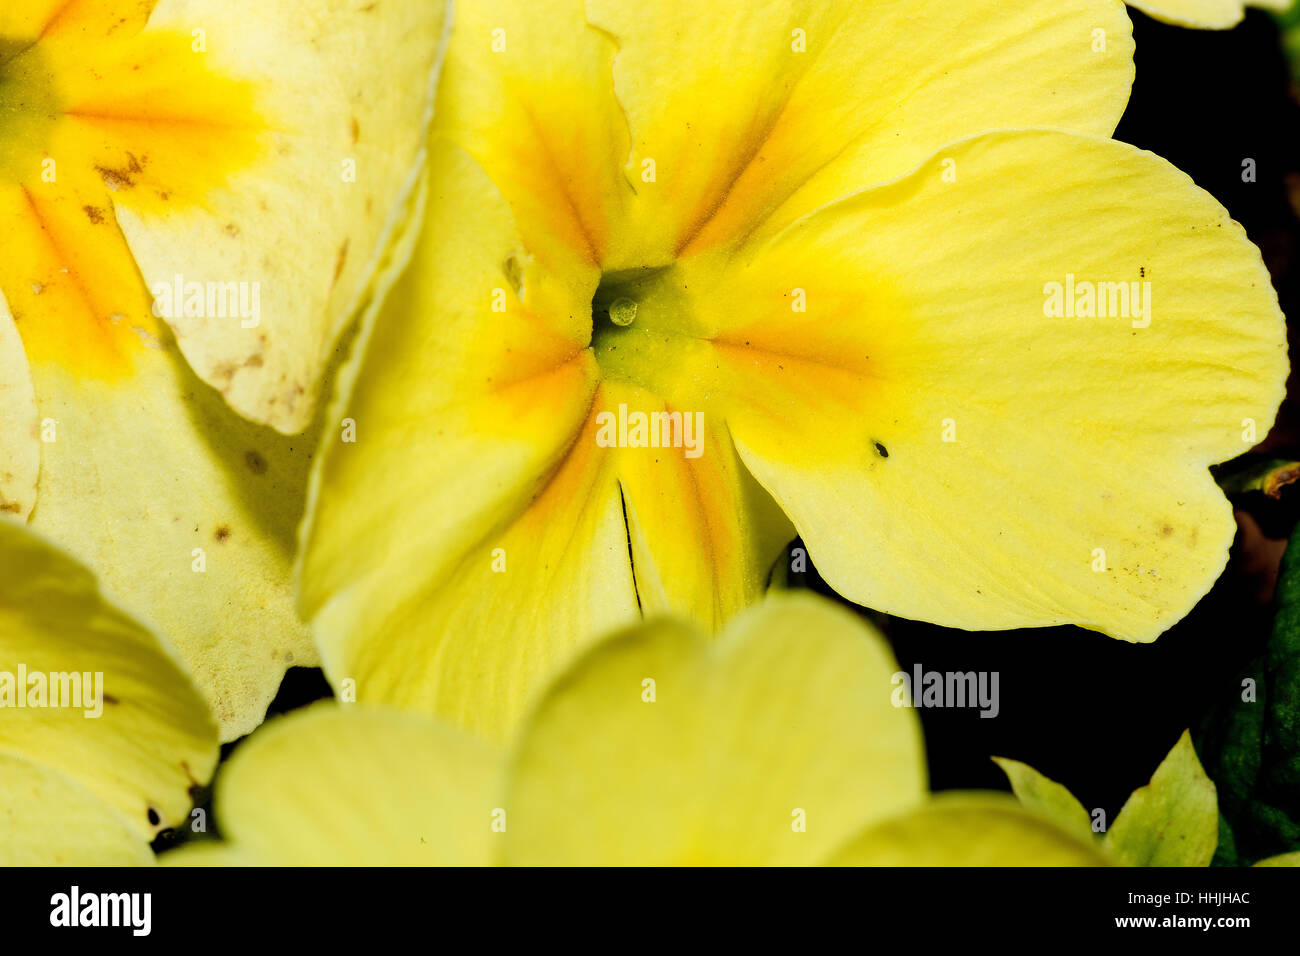 Pale yellow flowers with striped velvet textured petals close up pale yellow flowers with striped velvet textured petals close up mightylinksfo Choice Image